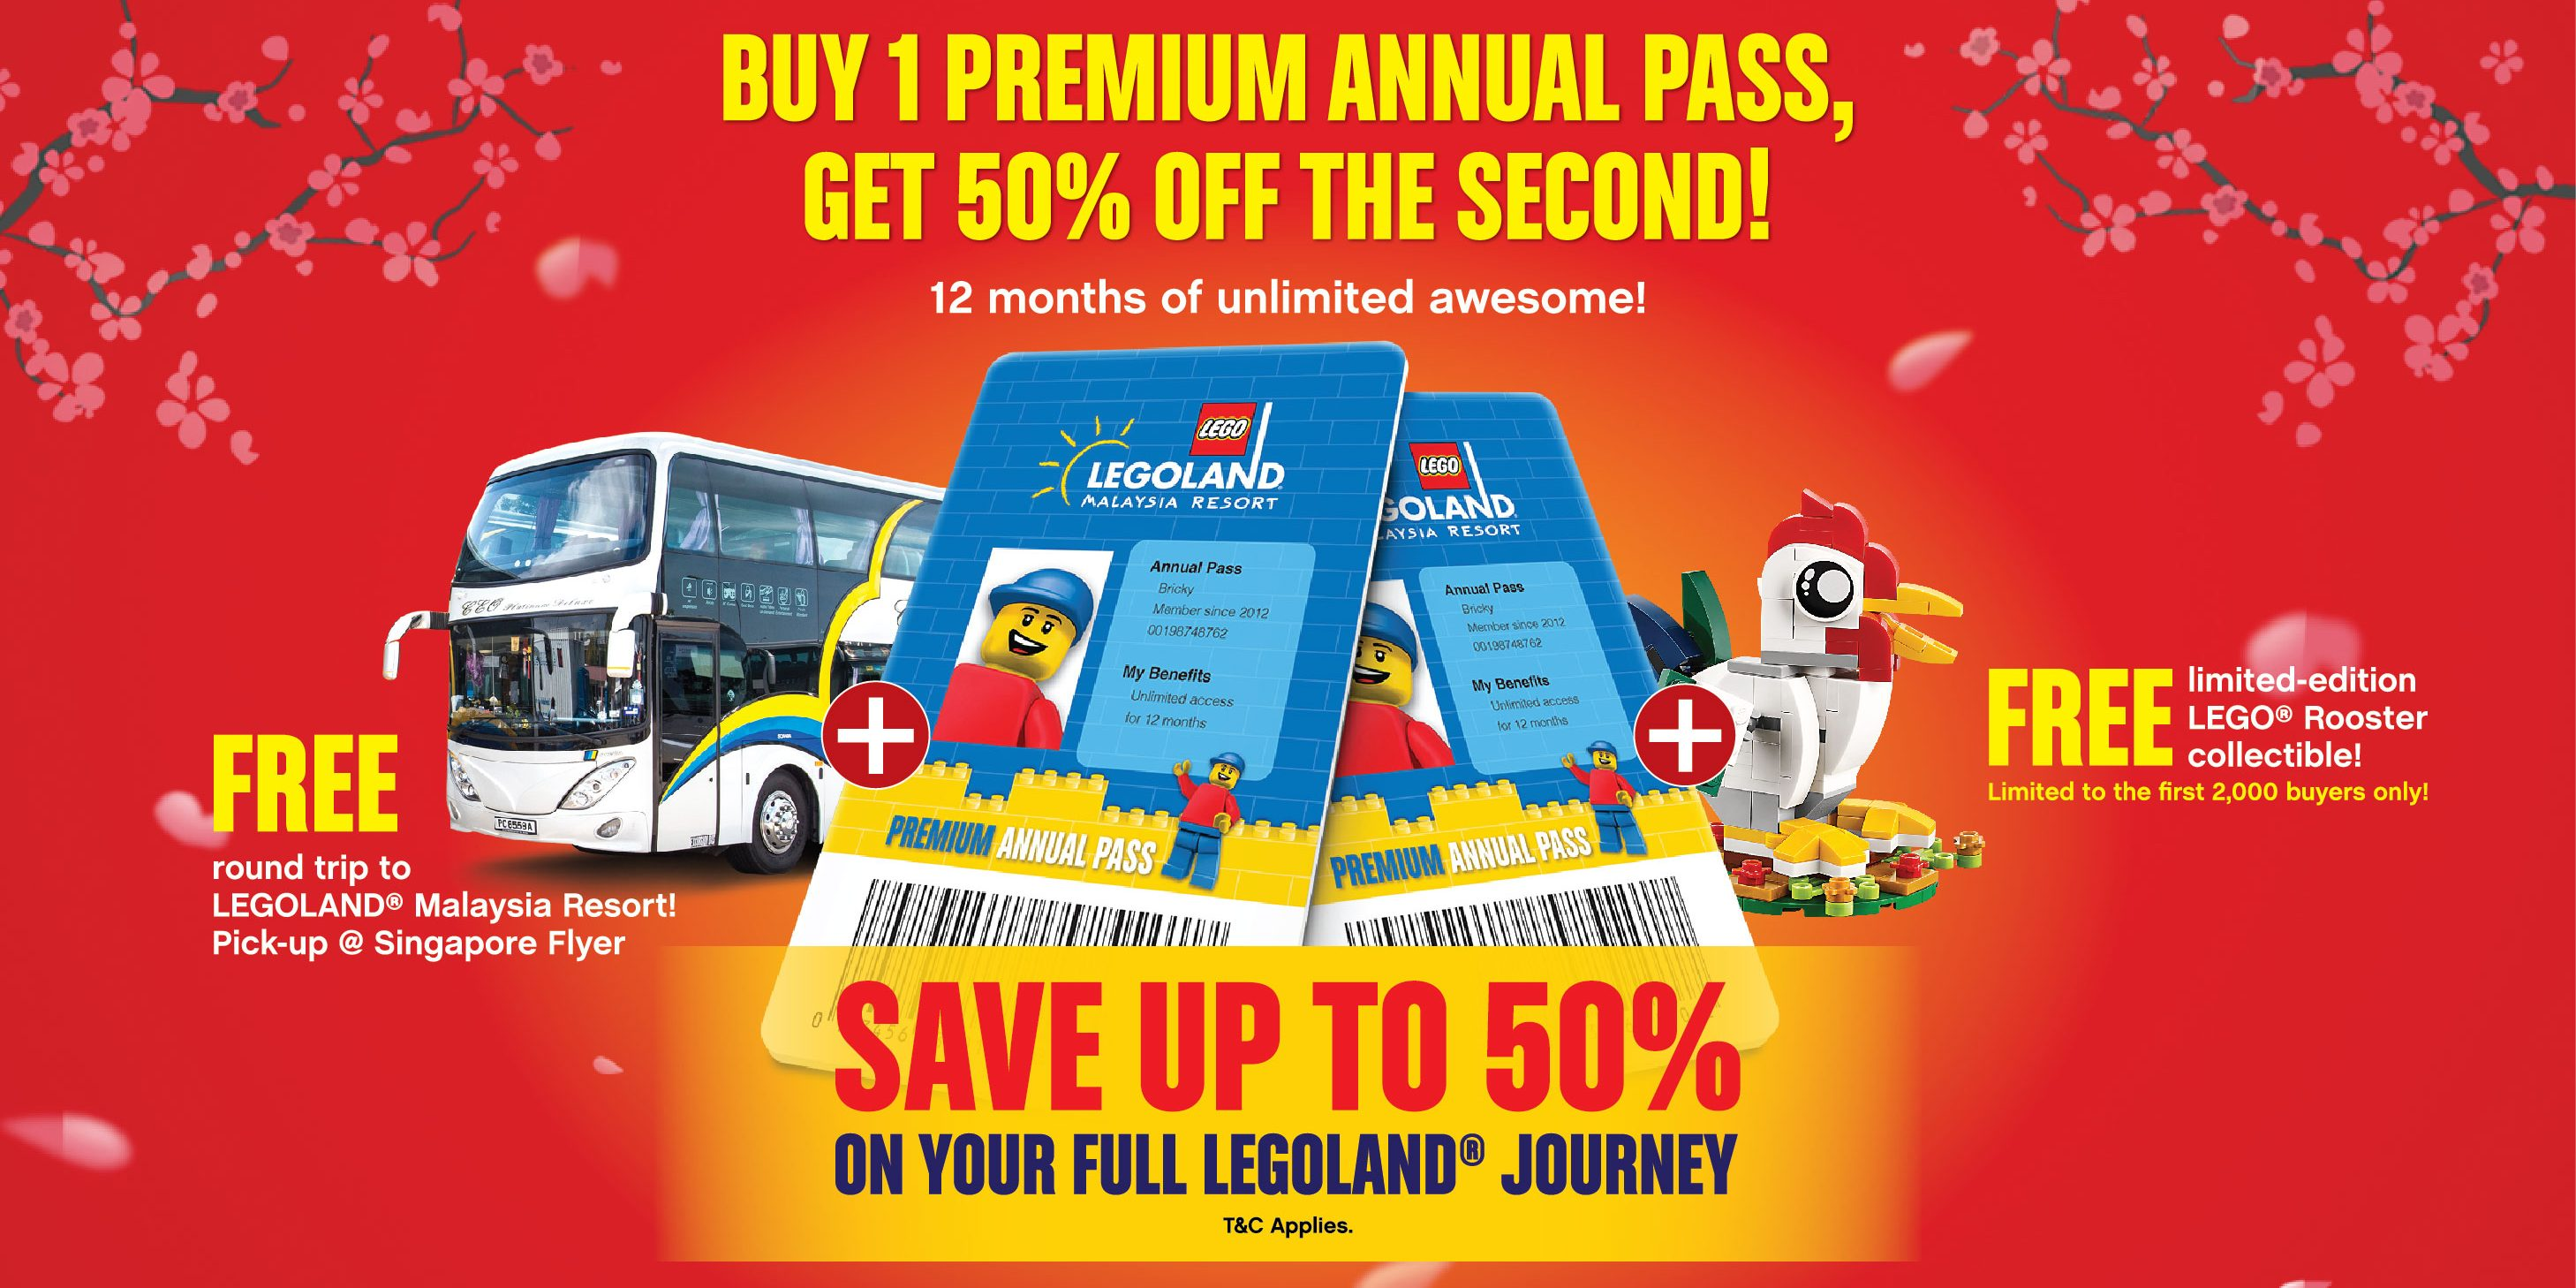 LEGOLAND Malaysia Lunar New Year Annual Pass Flash Deal 50% Off Promotion While Stocks Last | Why Not Deals & Promotions